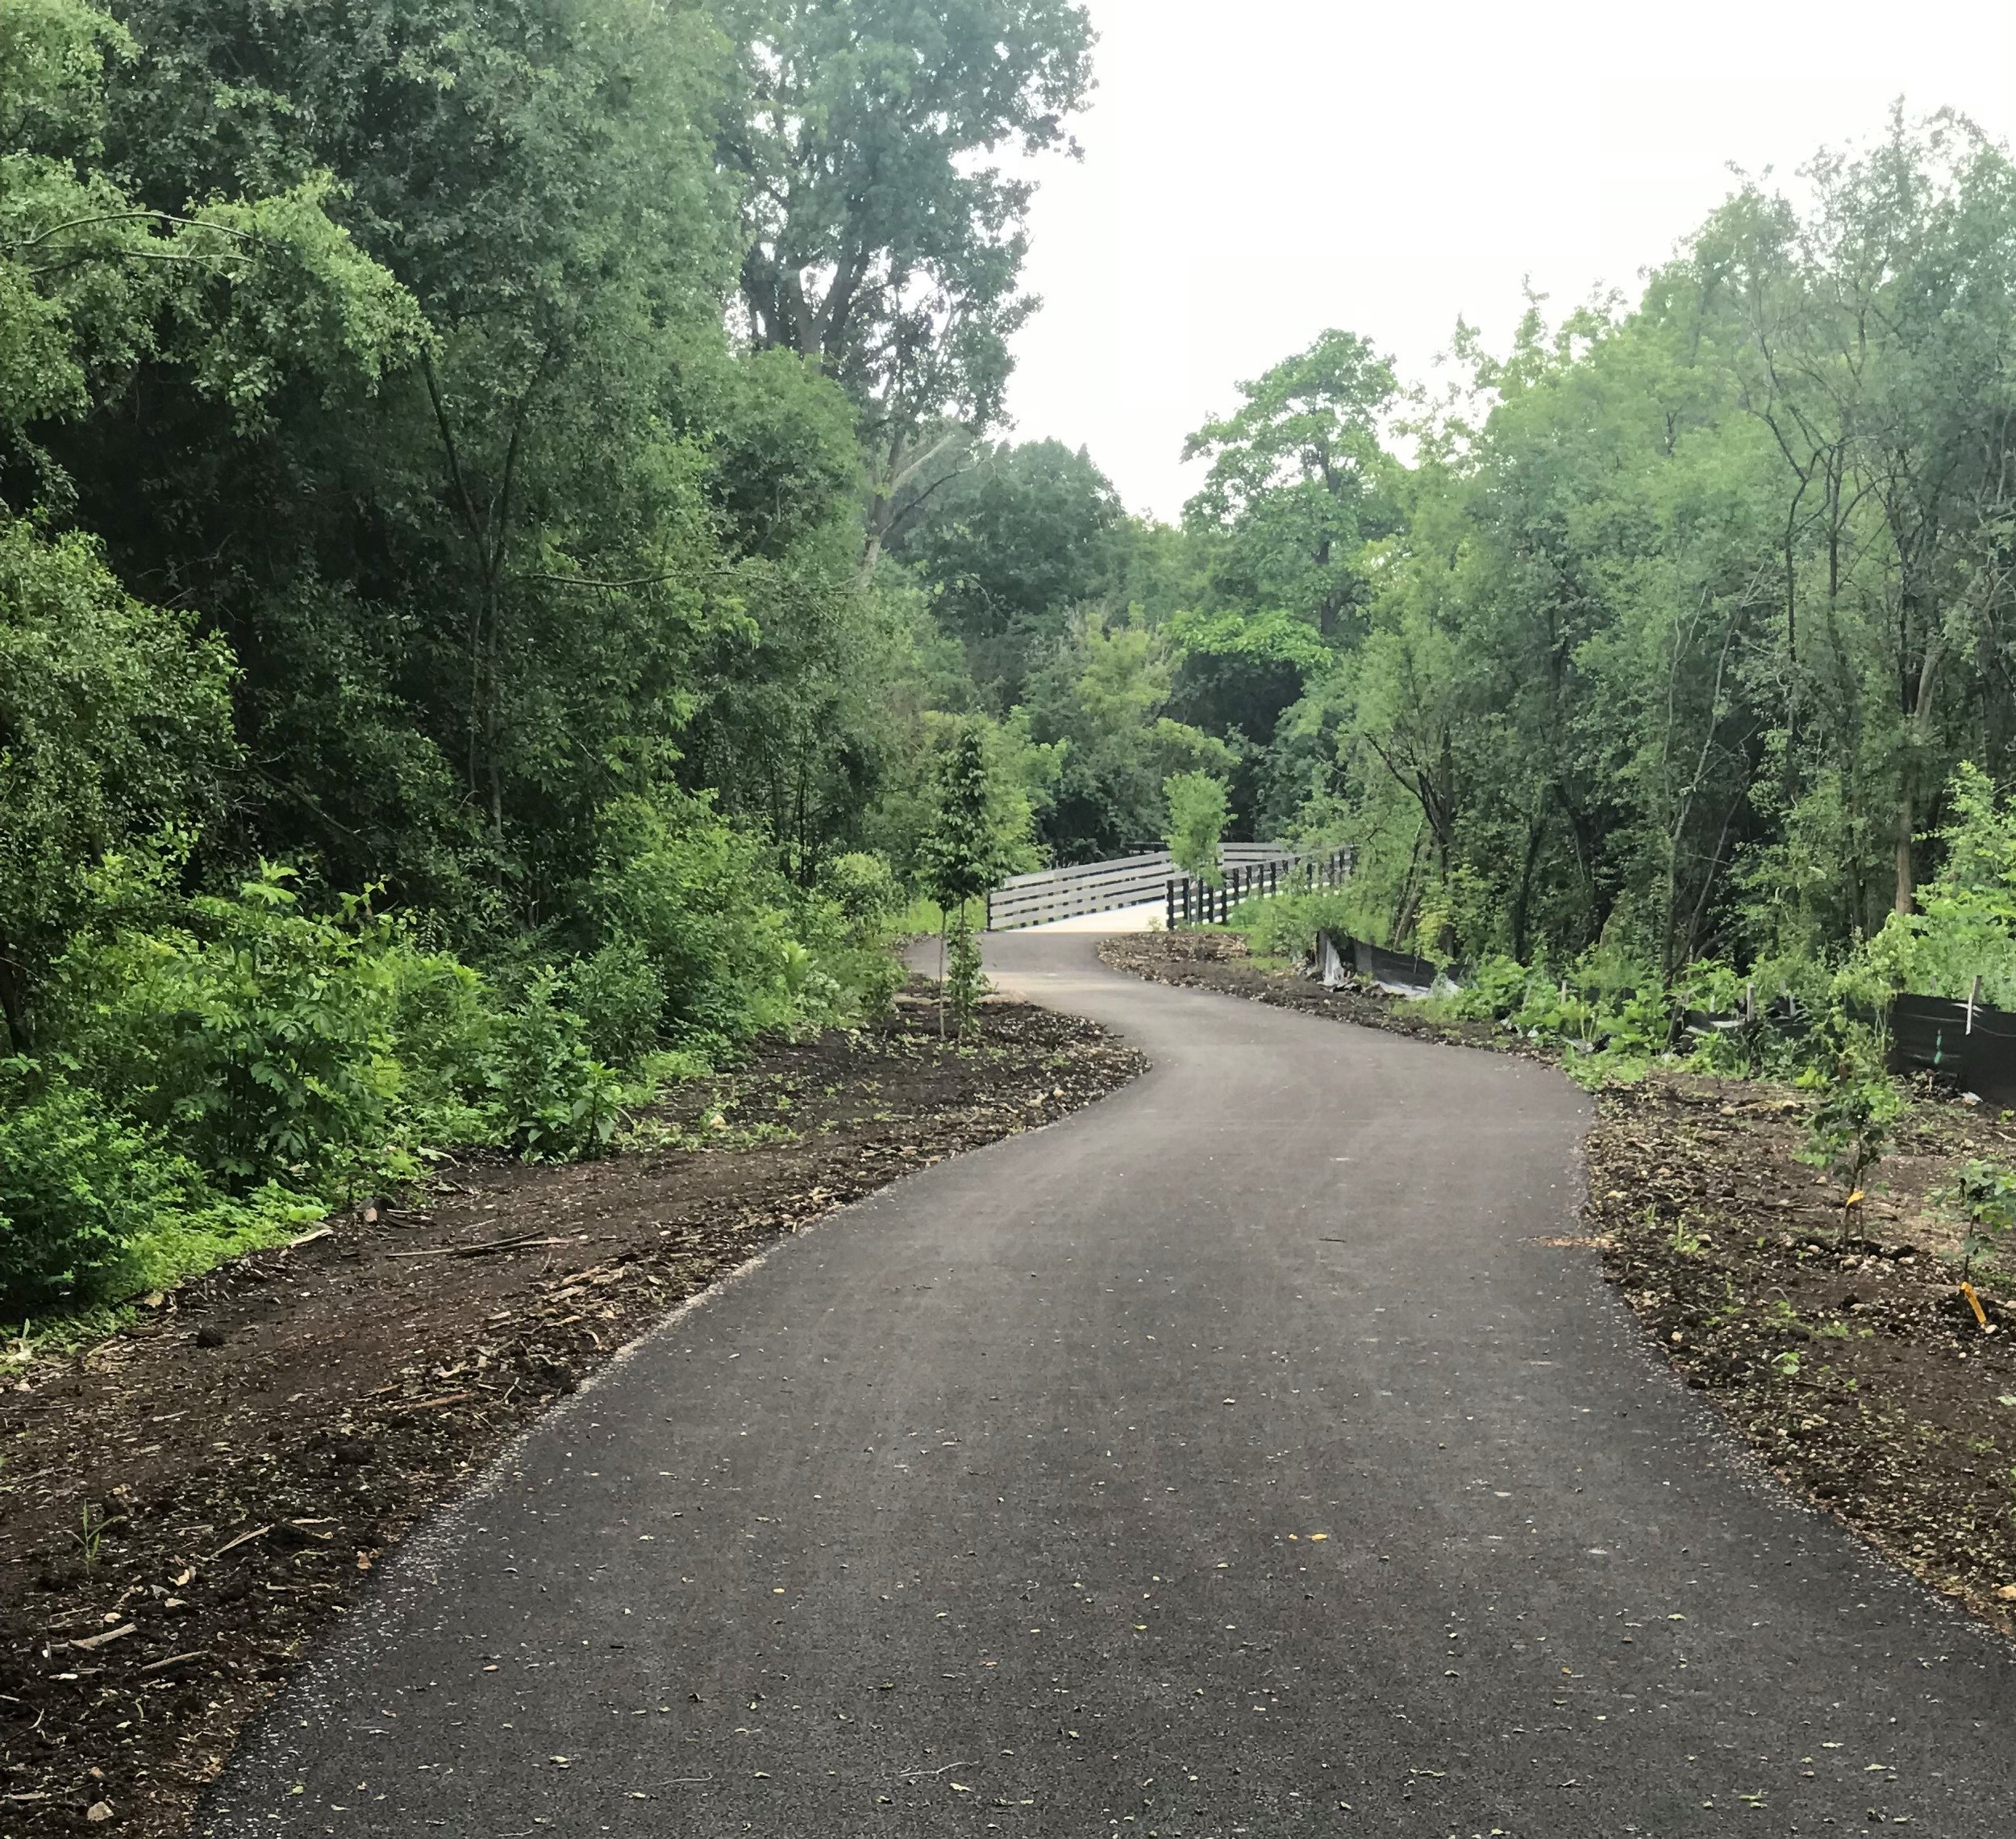 Heading south on the new section of the West Branch of the DuPage River Trail